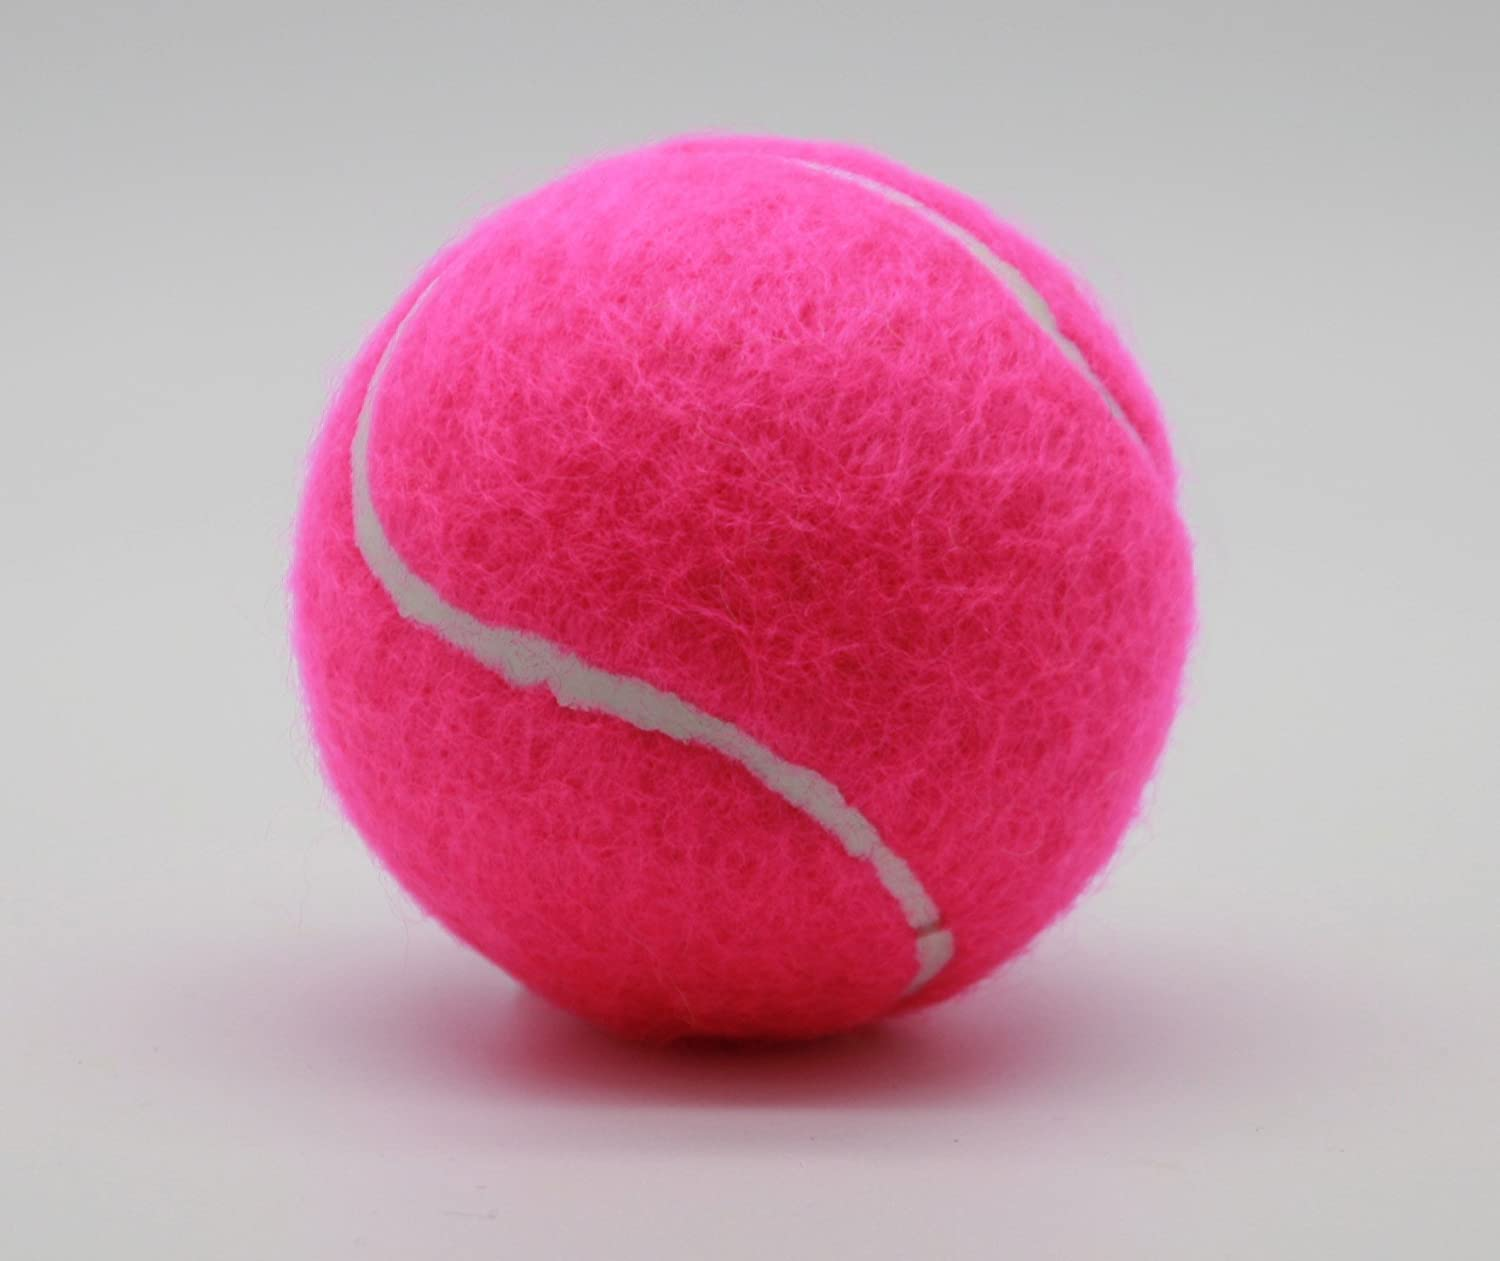 Personalized Tube of 3 Color Tennis Balls 1 x 3 Pink Balls Hand Finished Quality Tennis Balls Made in The UK by Price of Bath